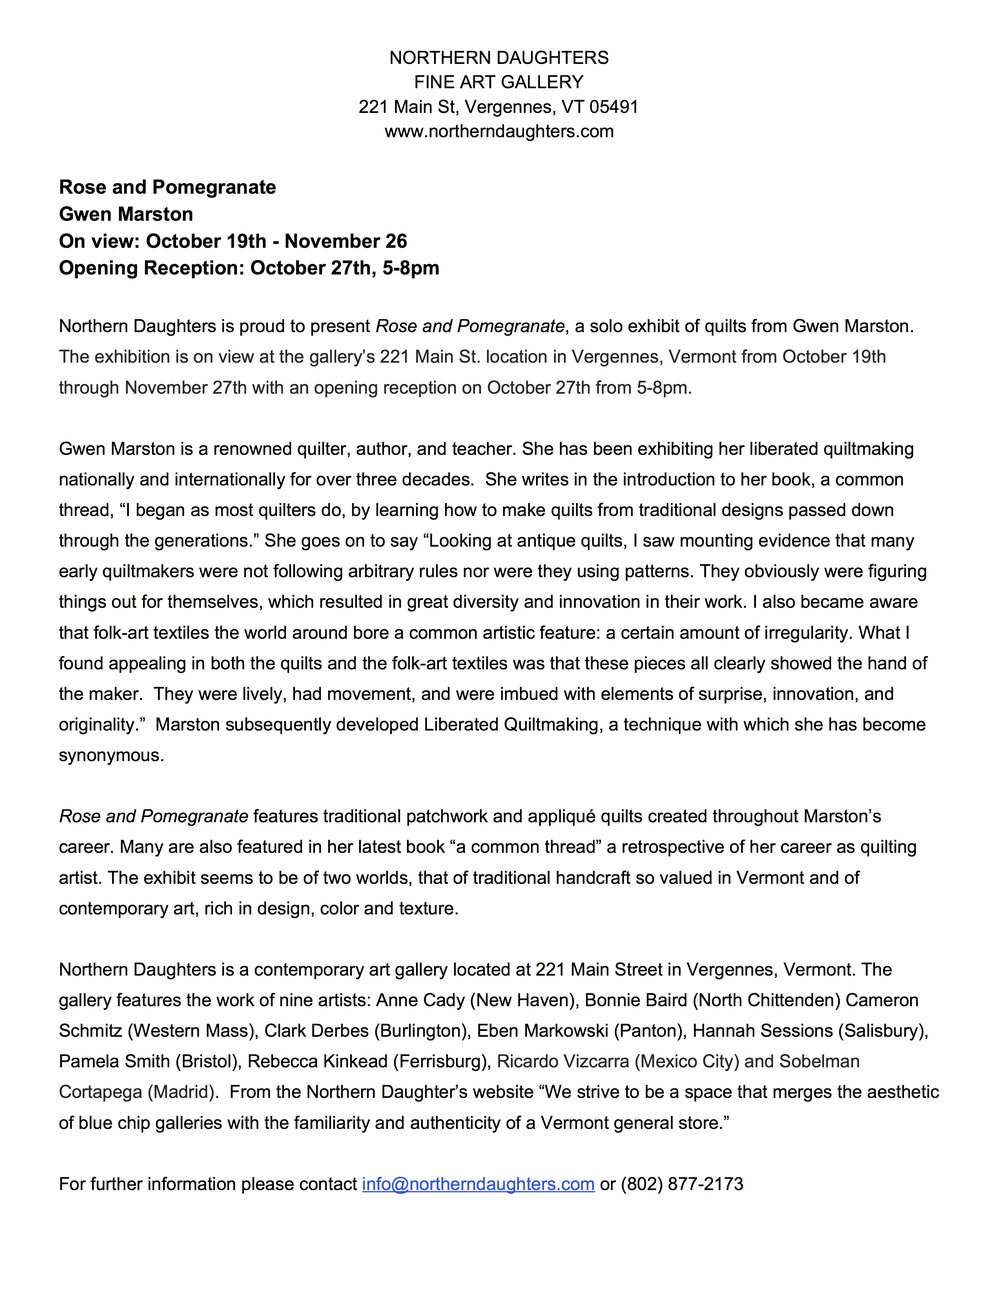 Rose and Pomegranate -  Press Release